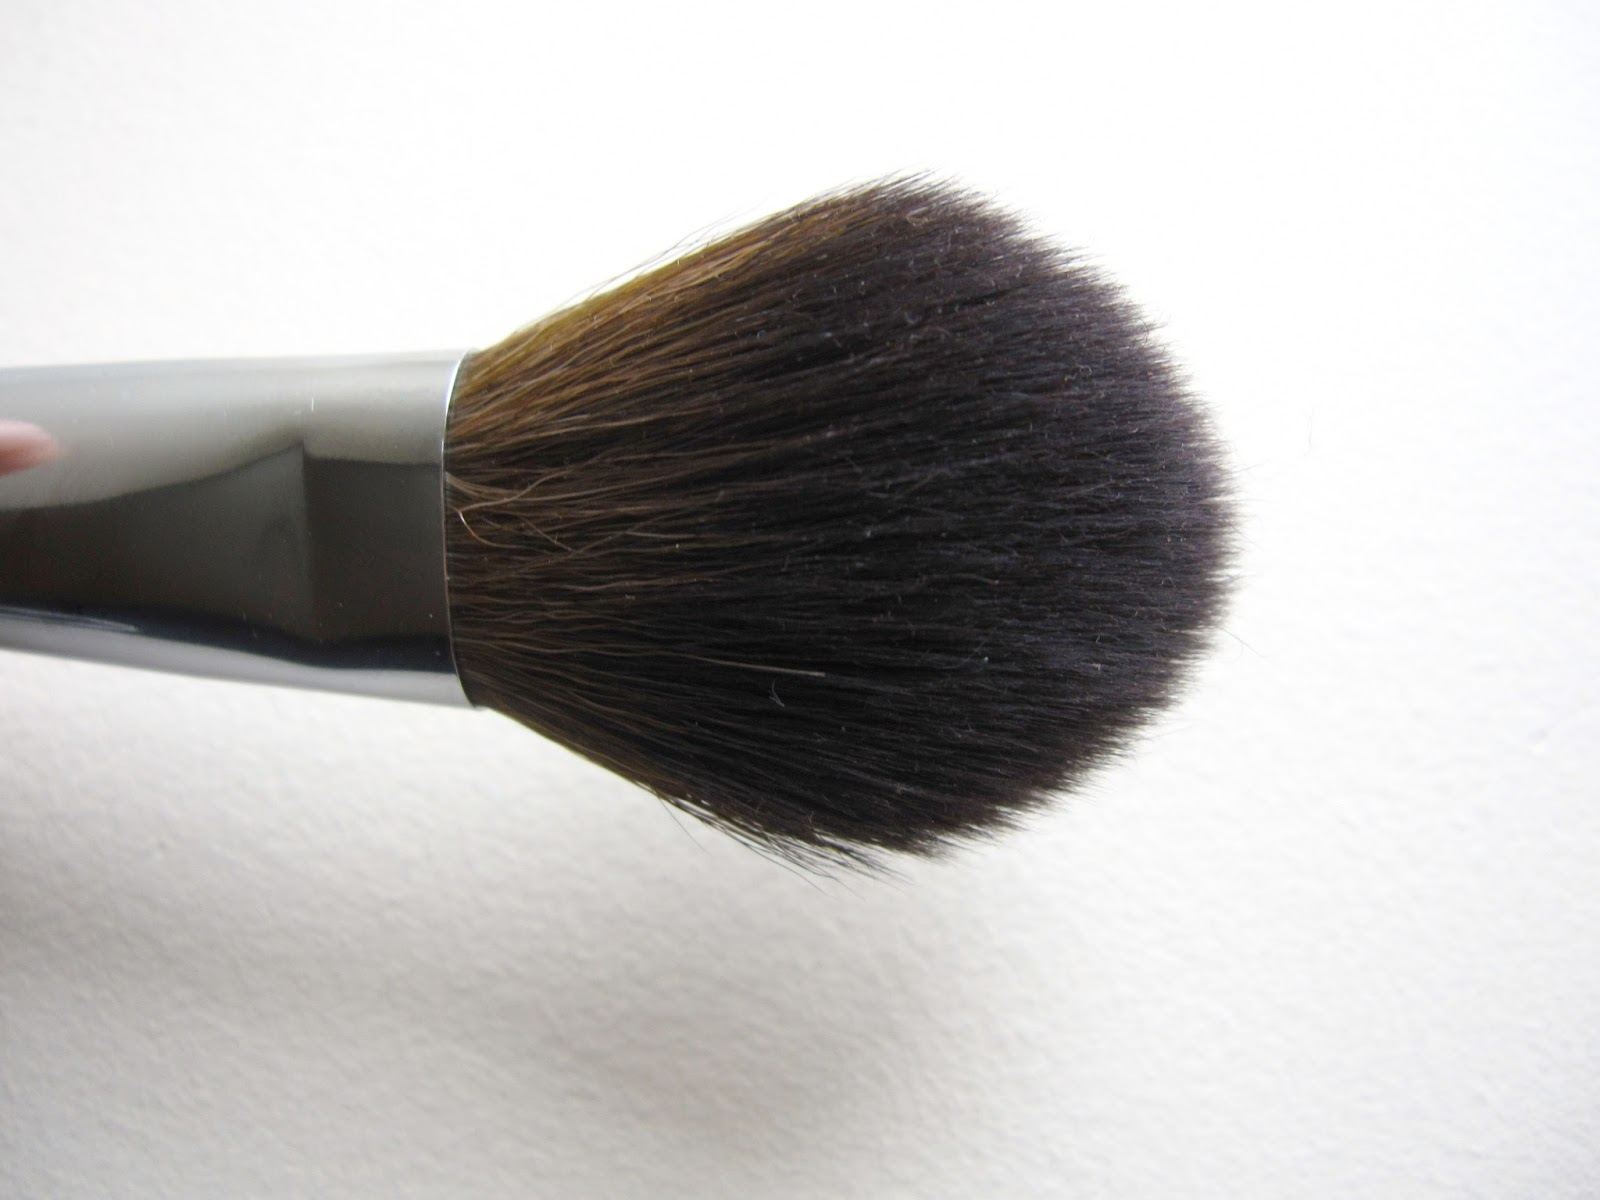 Royal & Langnickel Silk Pro C111-S Synthetic Blush Brush